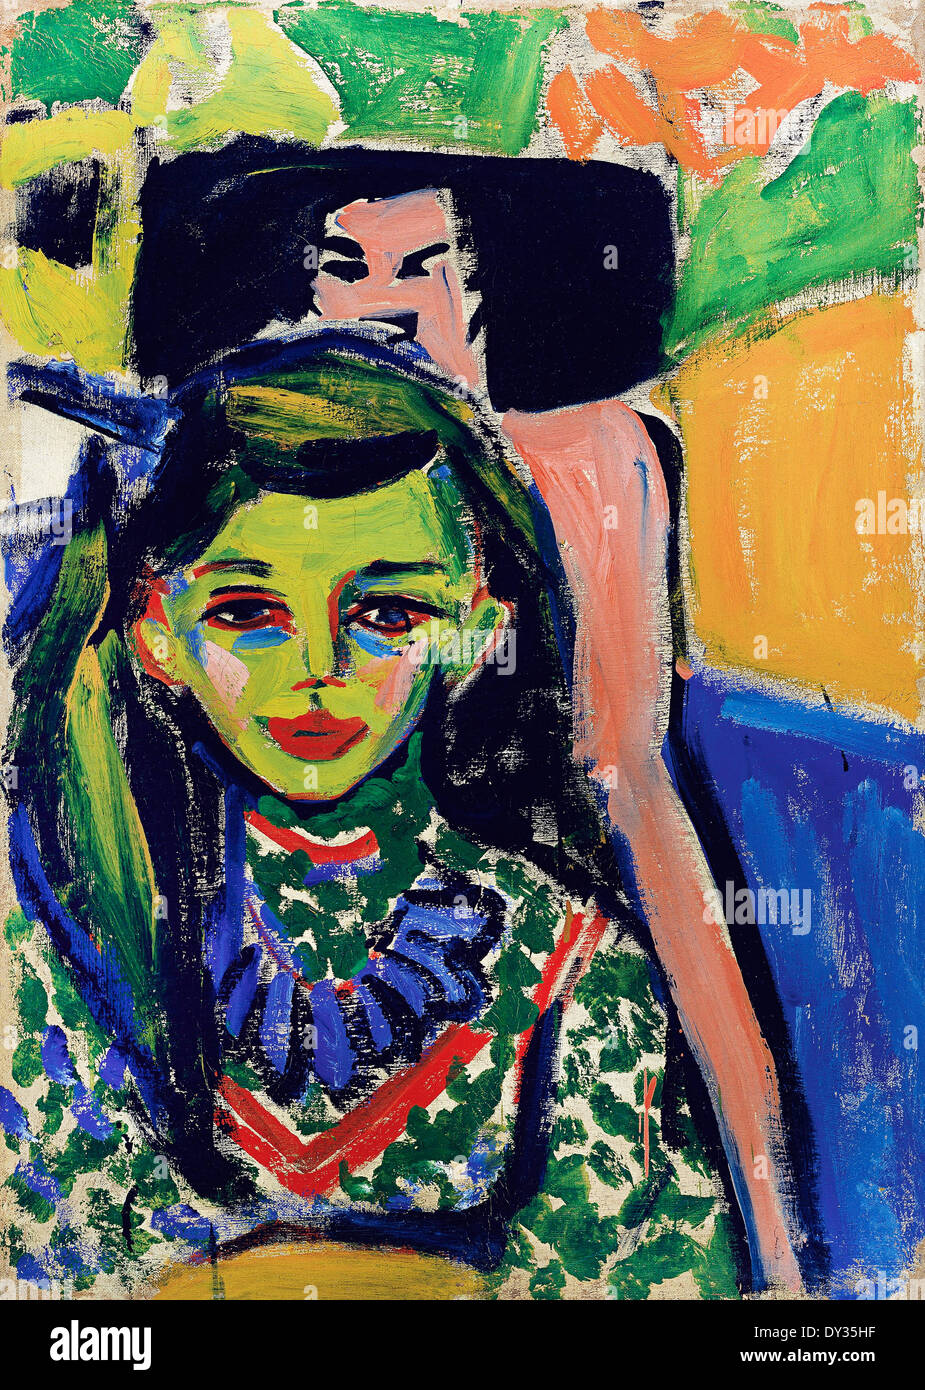 Ernst Ludwig Kirchner, Franzi in front of Carved Chair 1905-1920 Oil on canvas. Thyssen-Bornemisza Museum, Madrid, Spain. - Stock Image